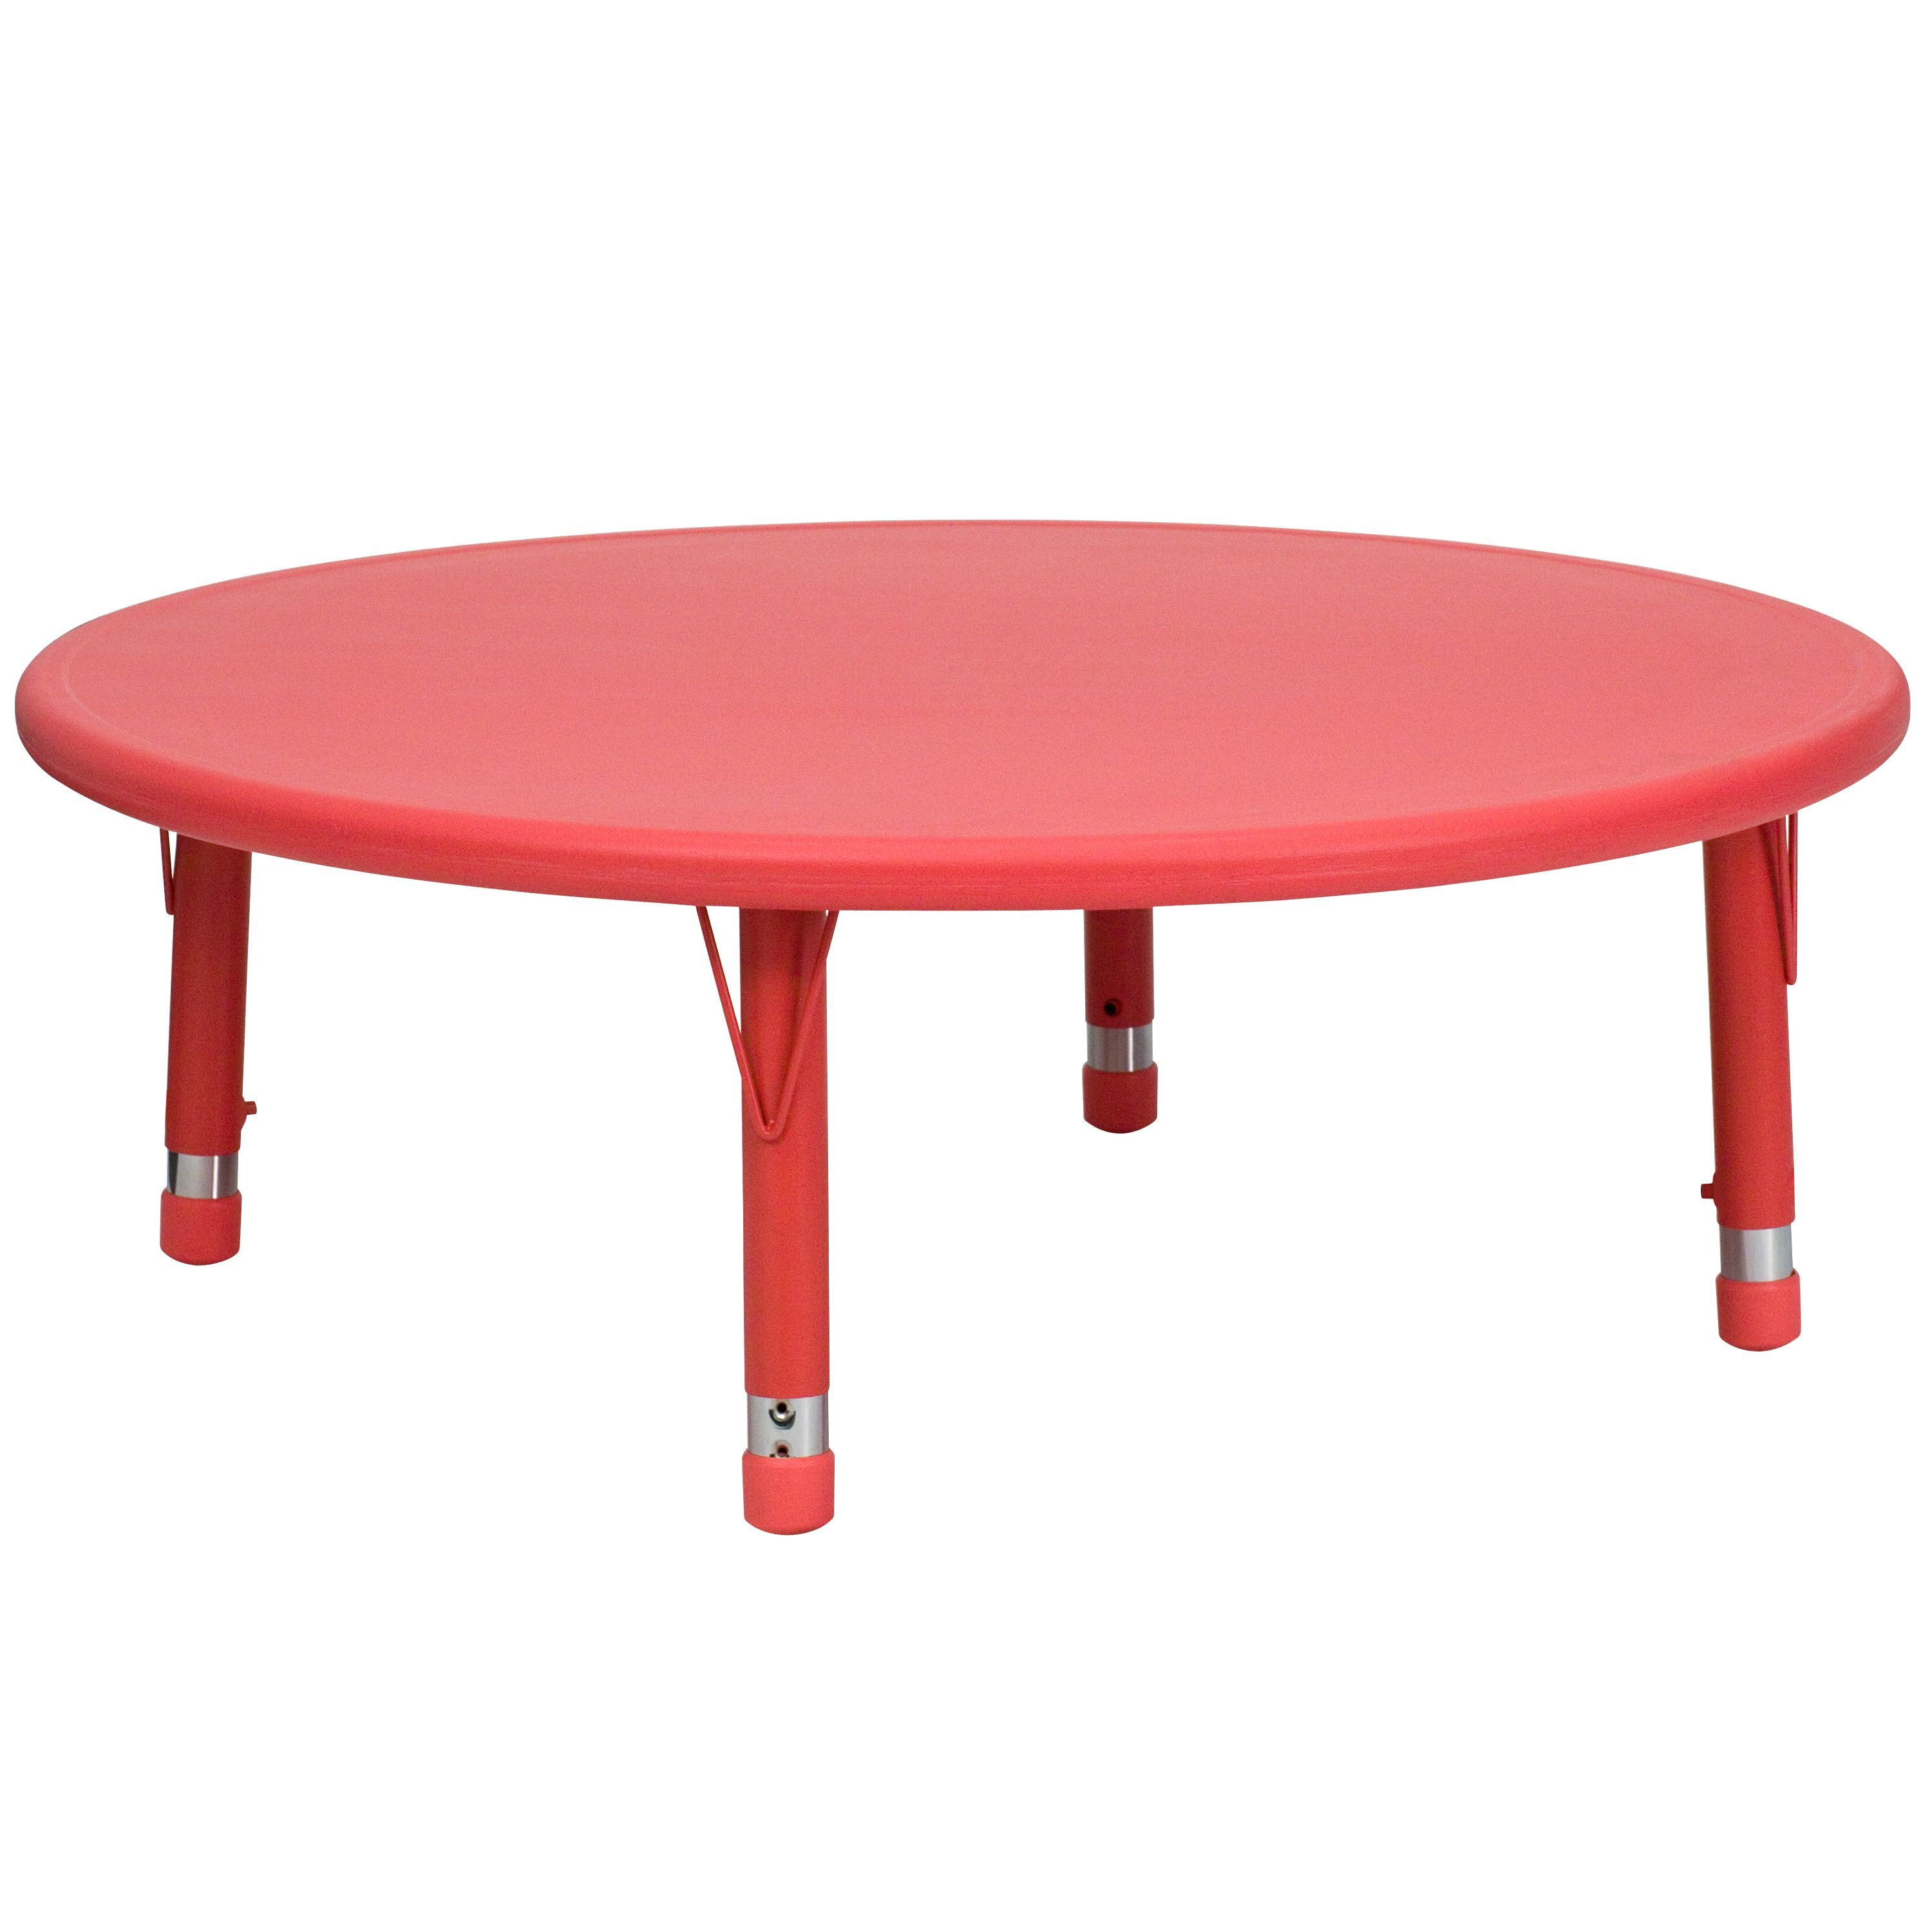 Round Plastic Tables 45